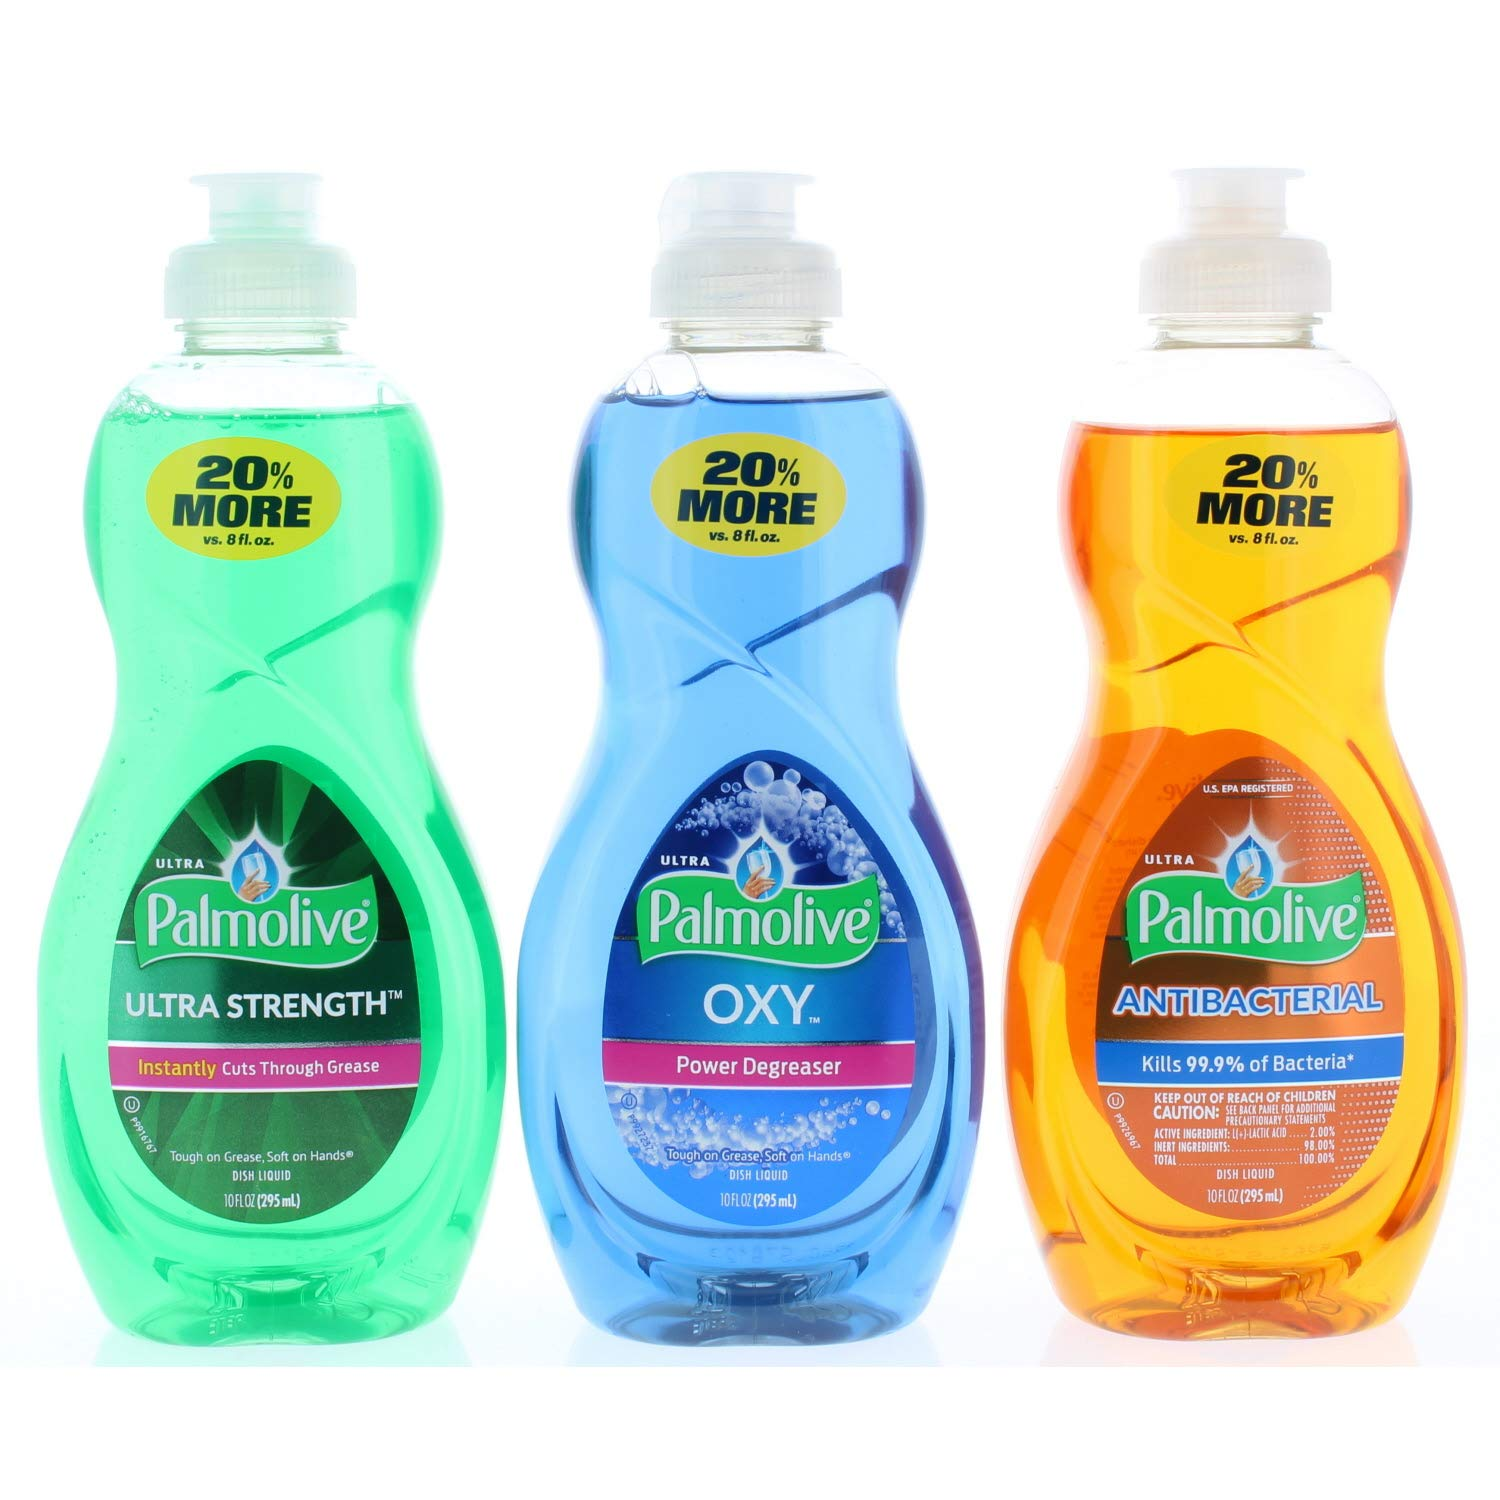 Palmolive Dishwashing Soap 10 oz Trial Size (Variety Pack)